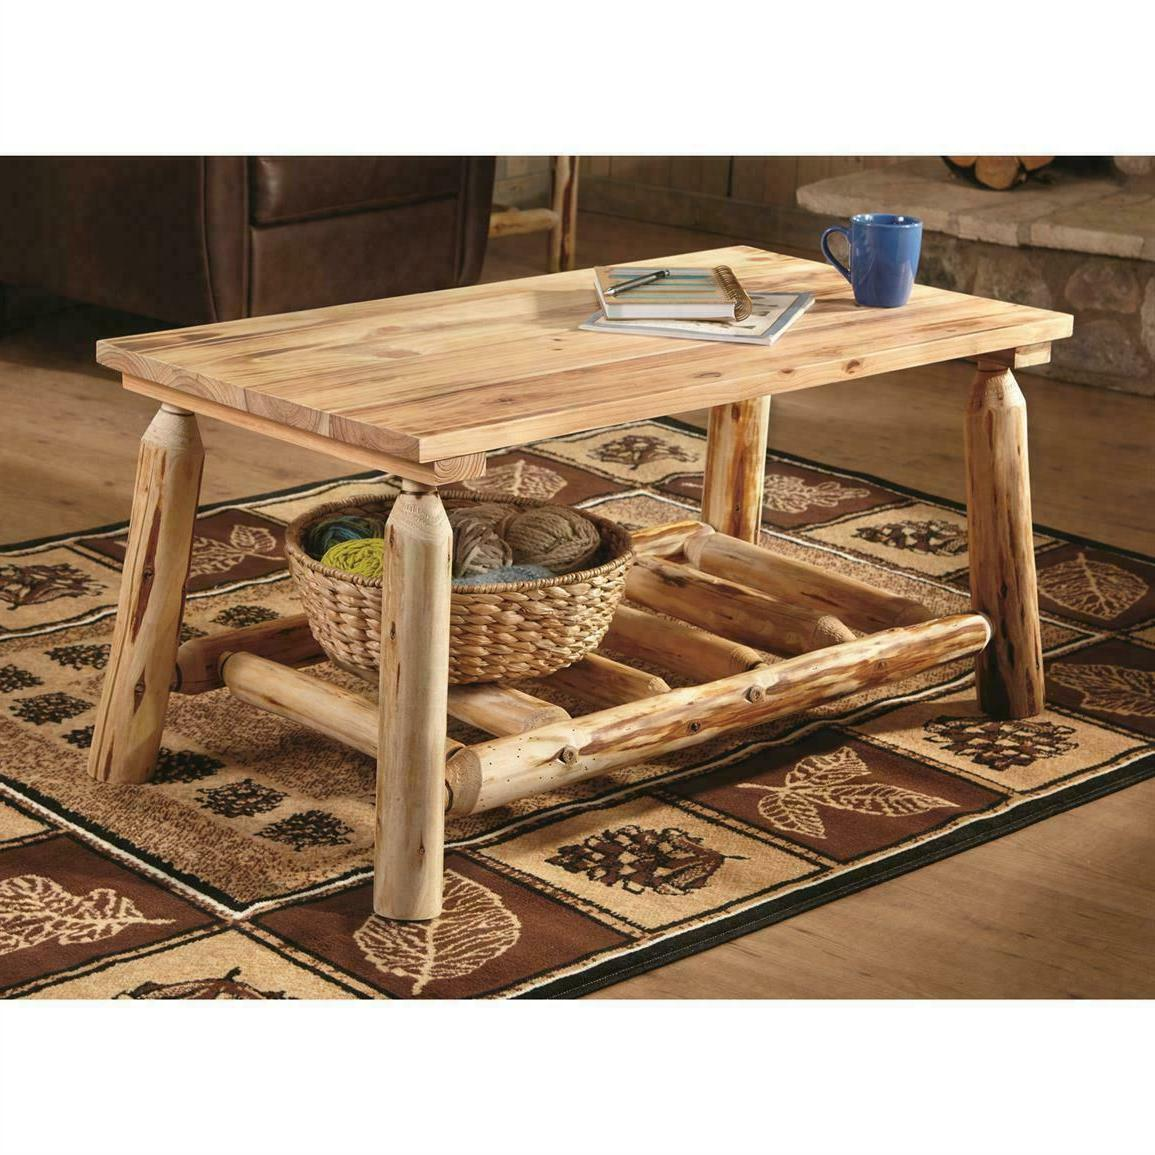 Rustic Natural Pine Log Coffee Table Premium Lacquer Finish